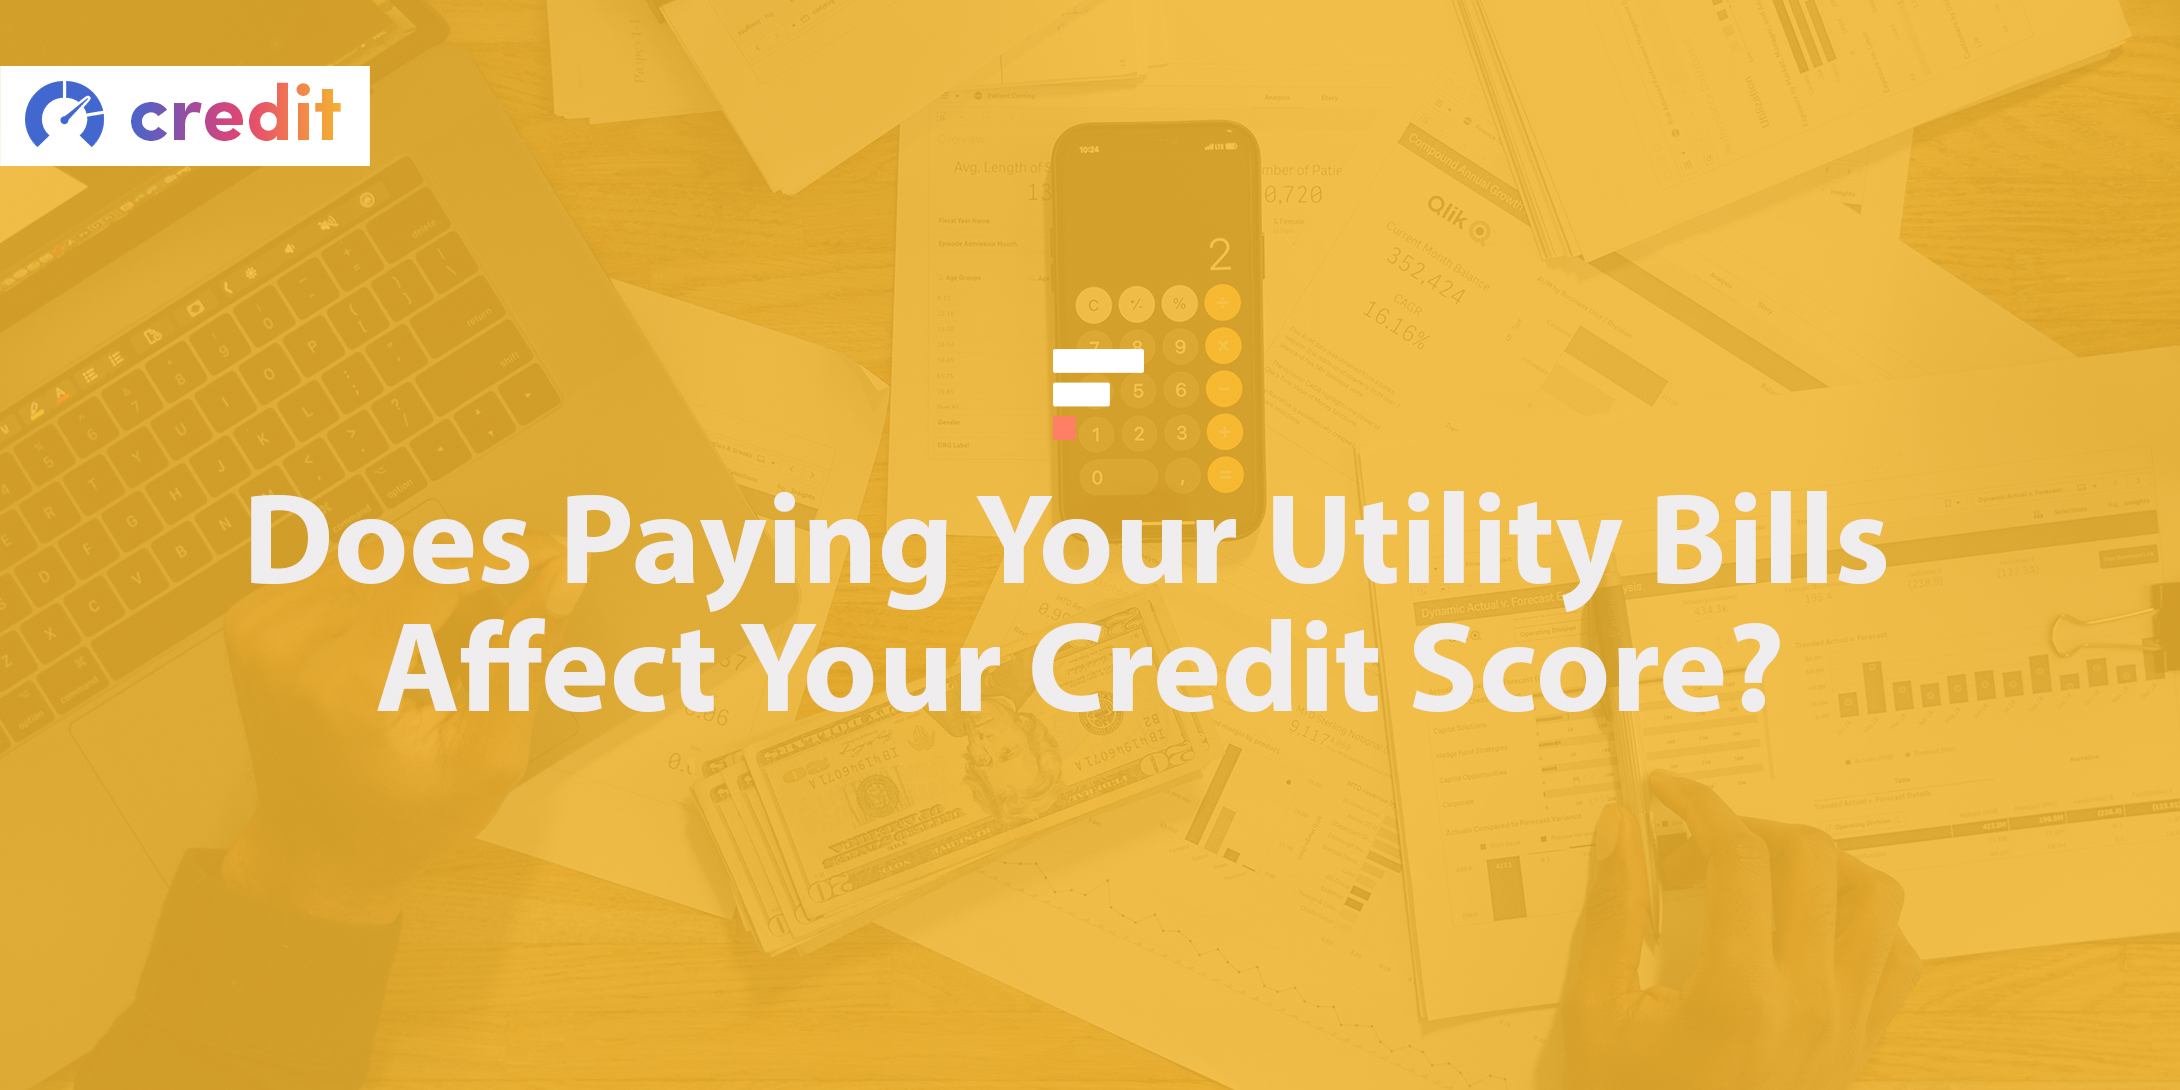 Does paying your utility bills affect your credit score?